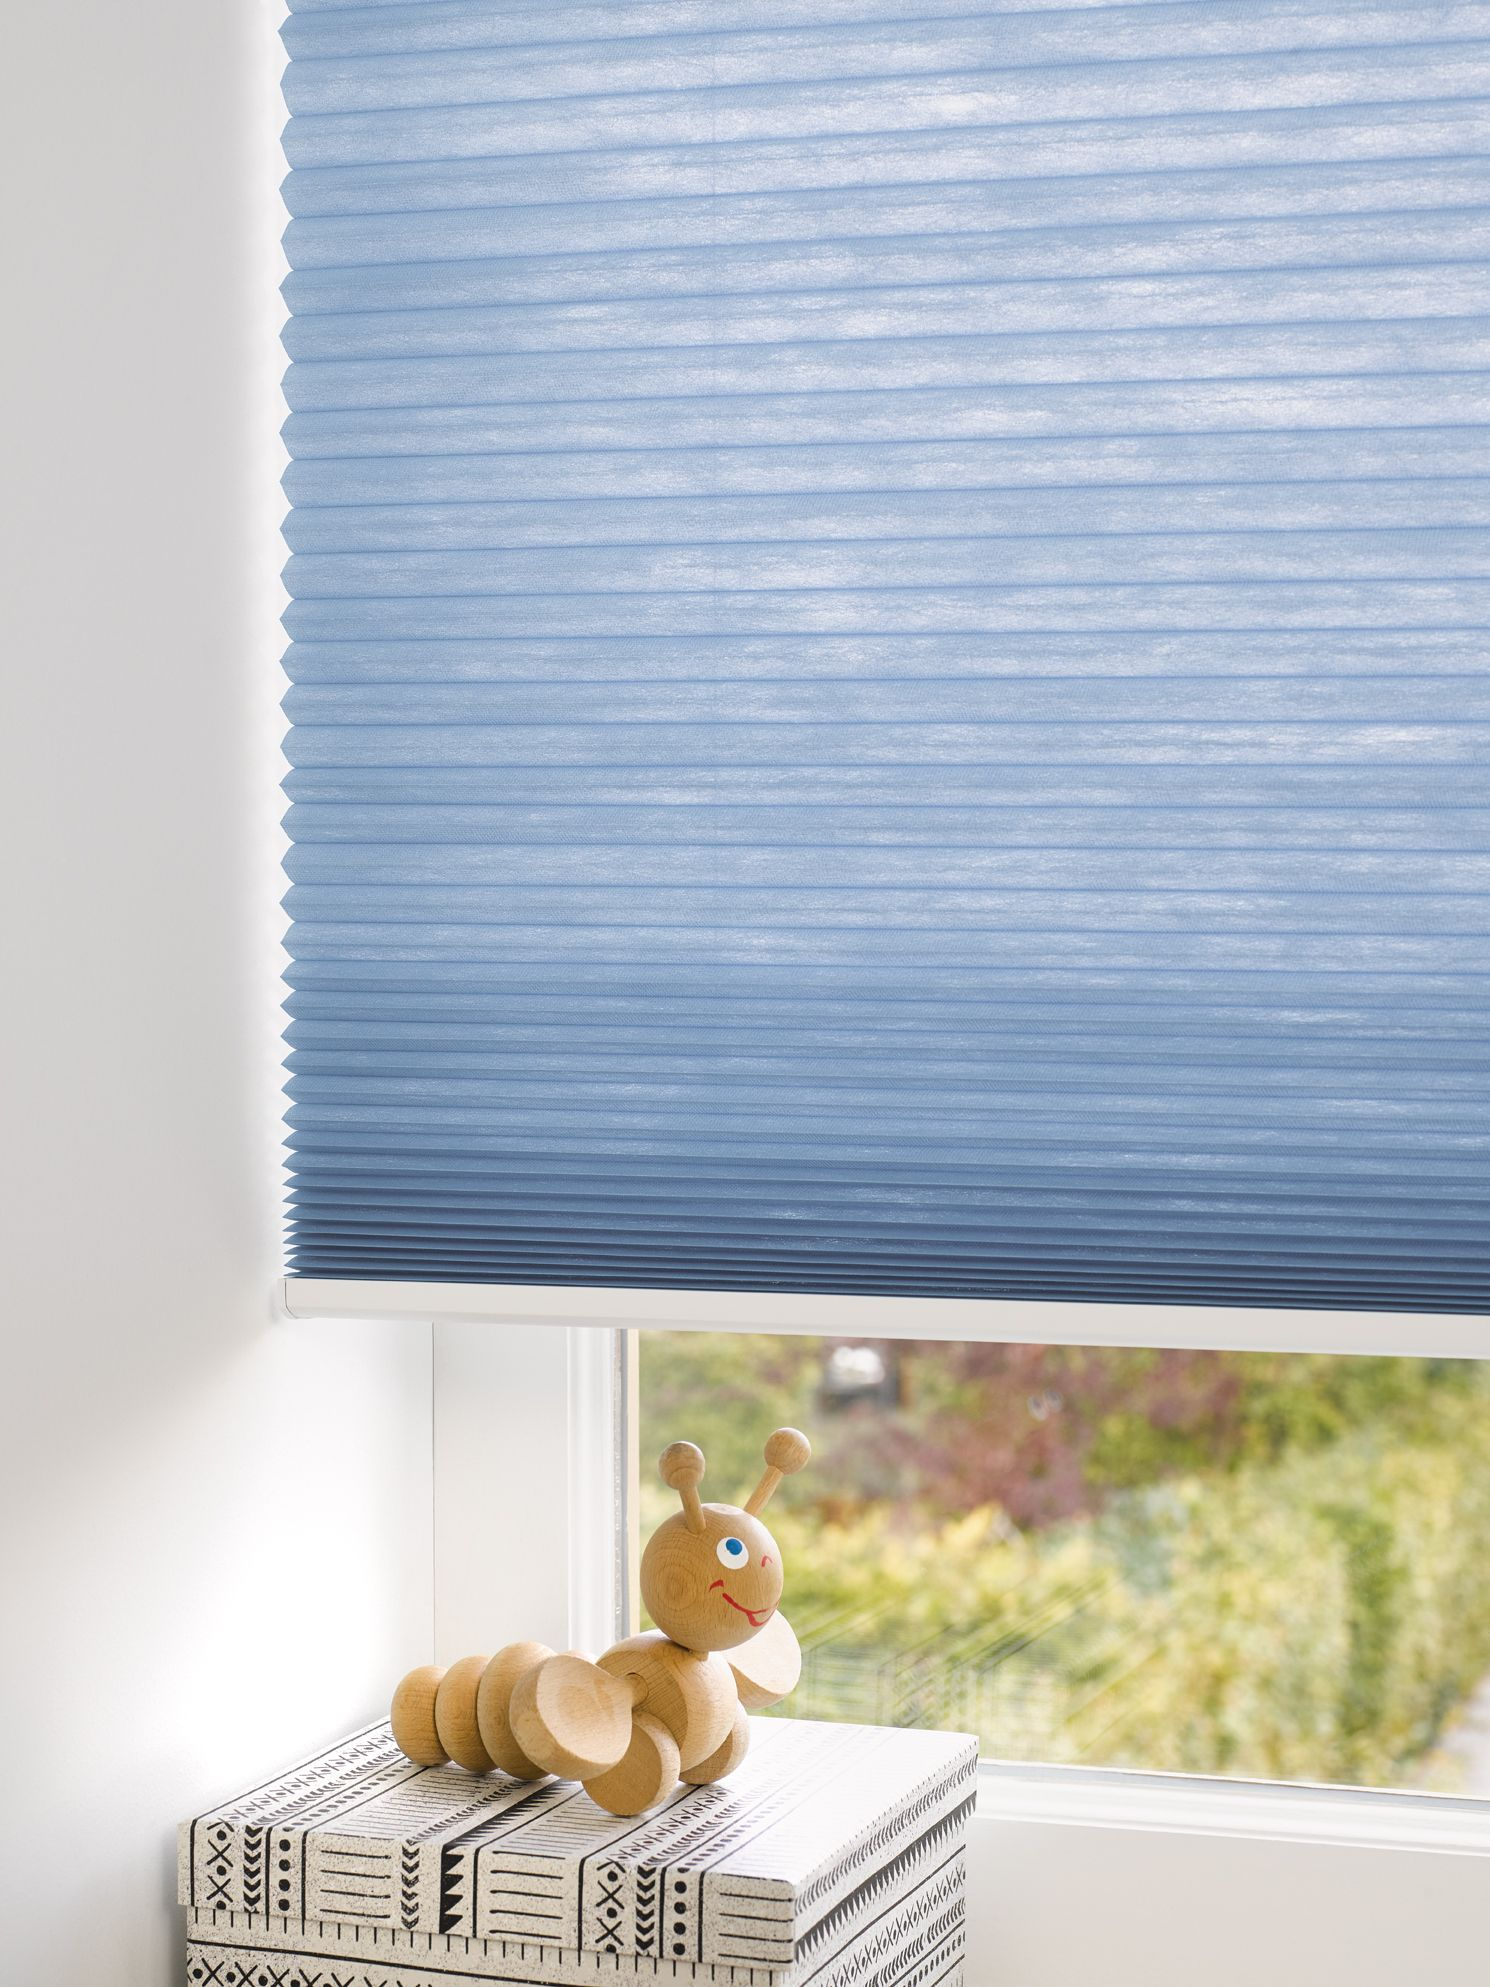 noise reducing blinds moviesnarc duette energy saving blinds for childrens bedrooms blue blinds energy kids reasons why are the best blinds for childrens